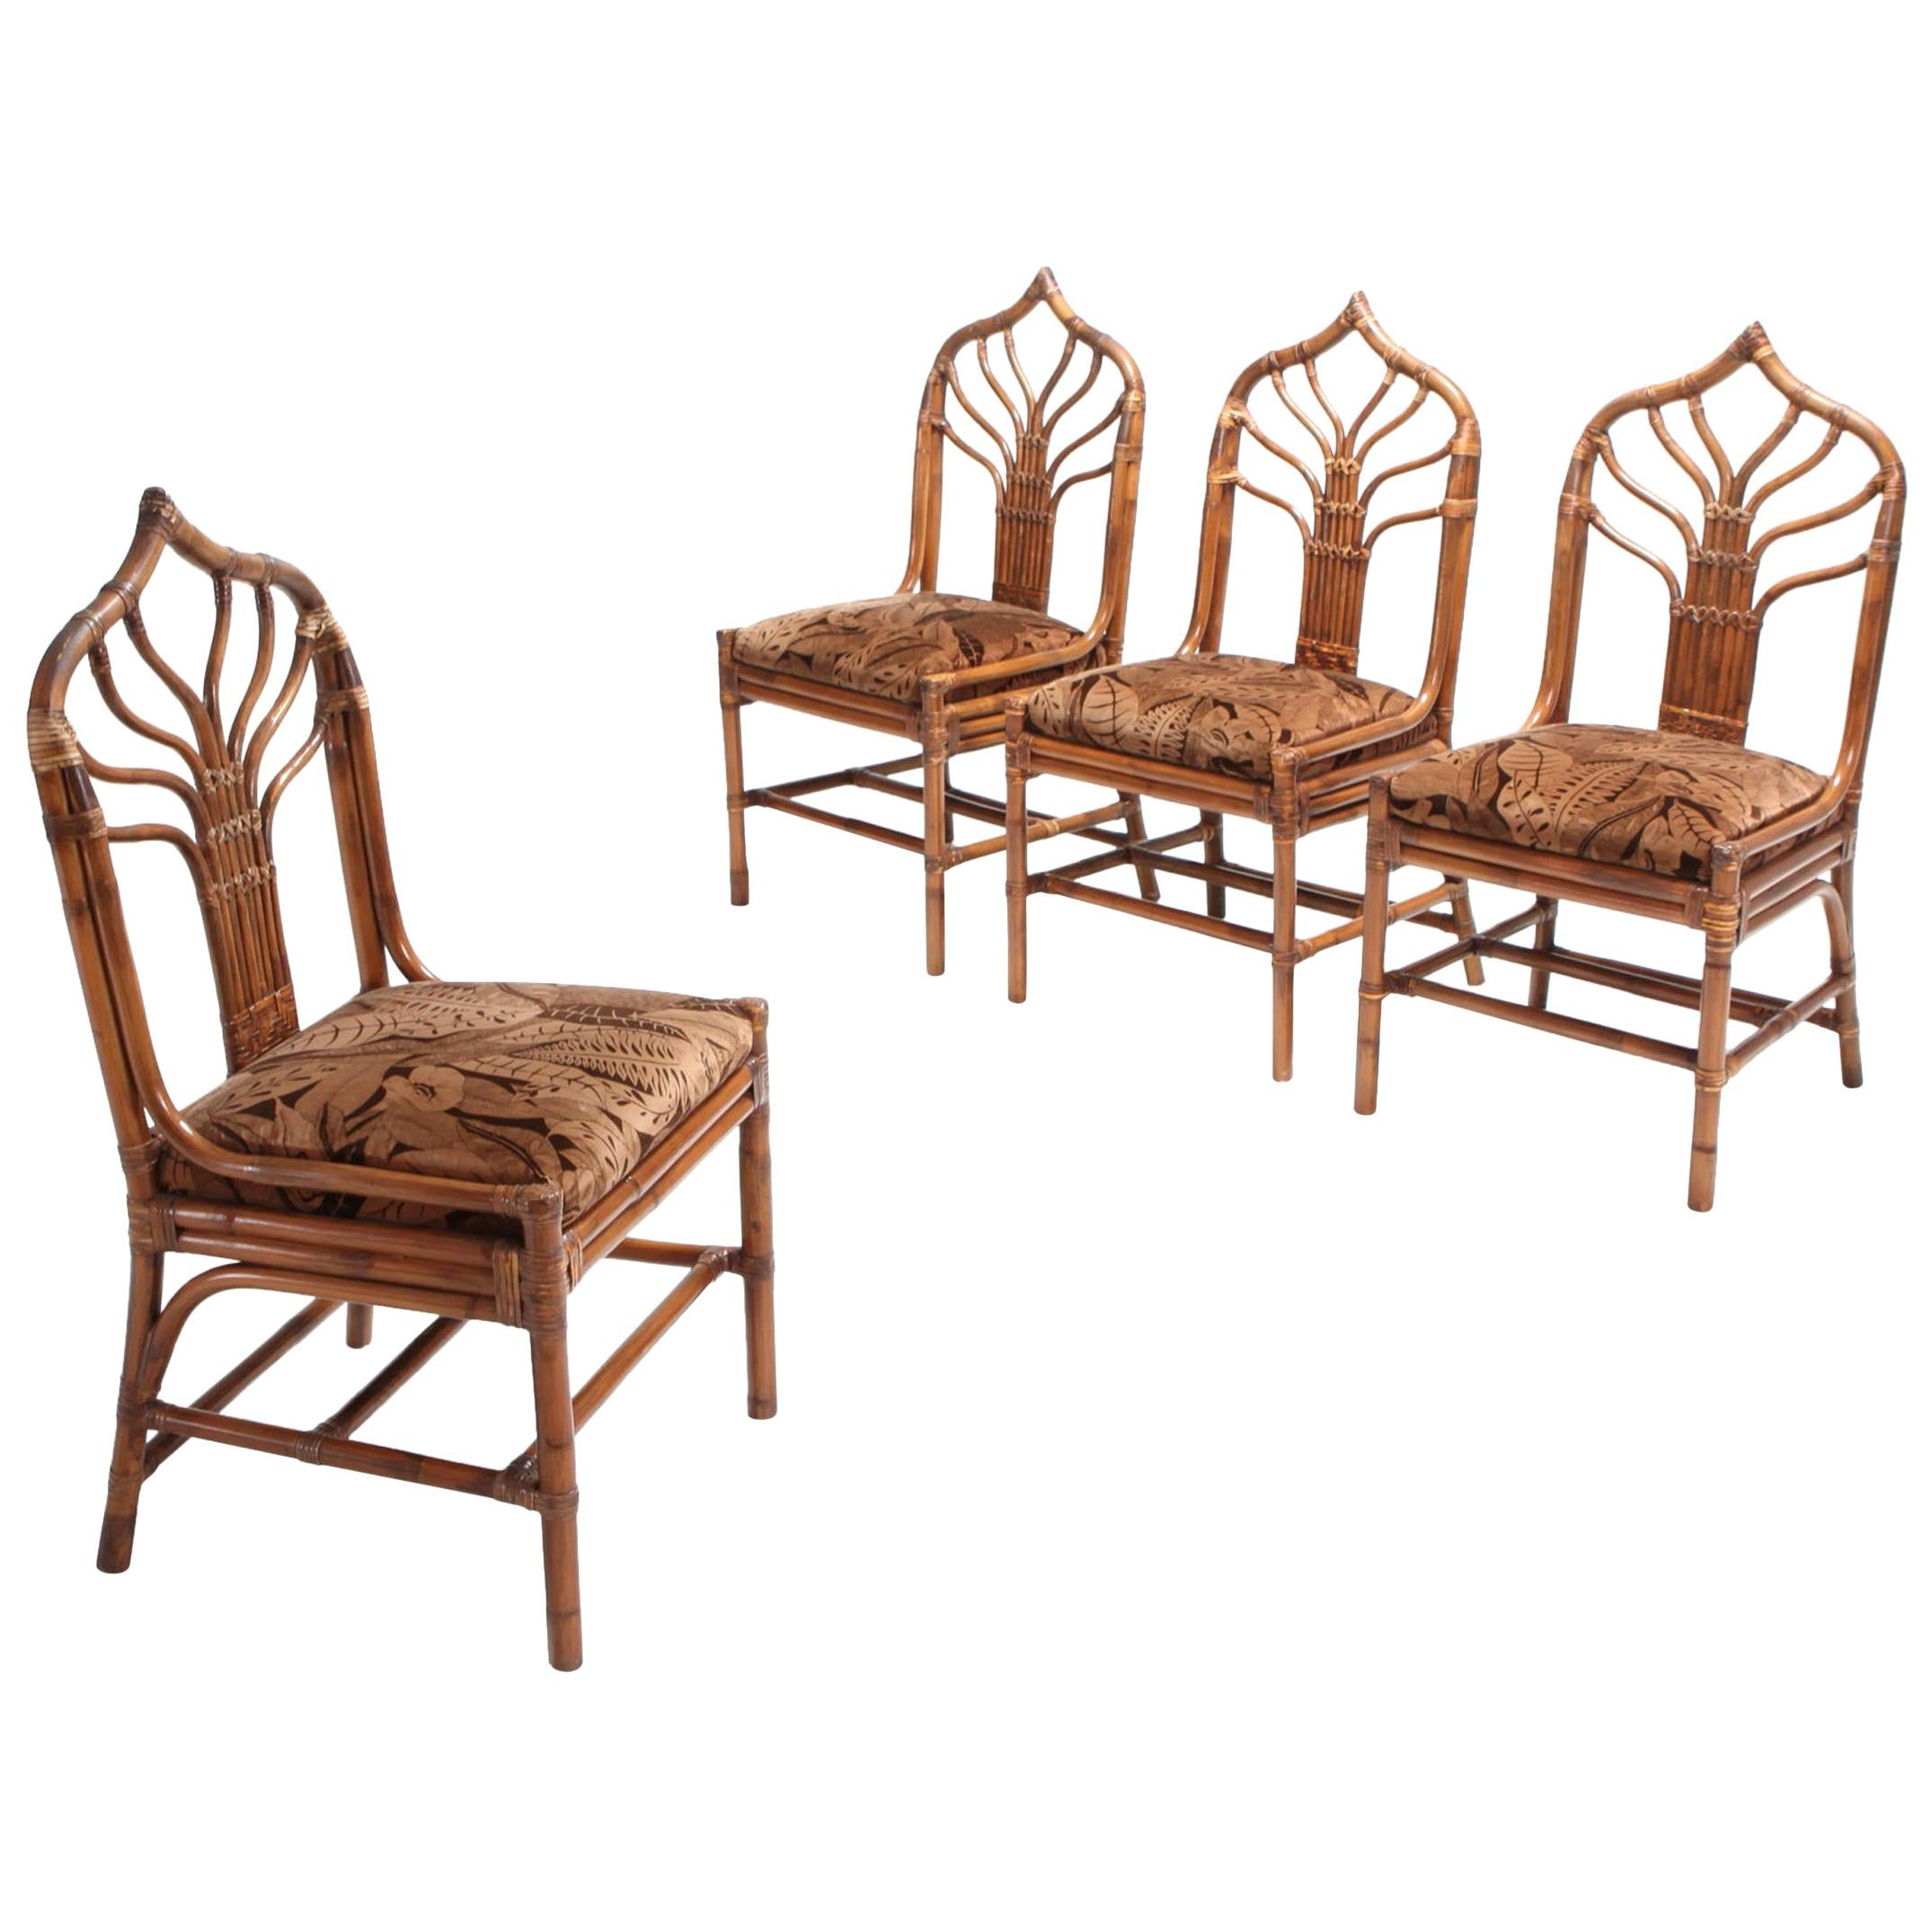 Bamboo Dining Chairs from 1970s, Italy